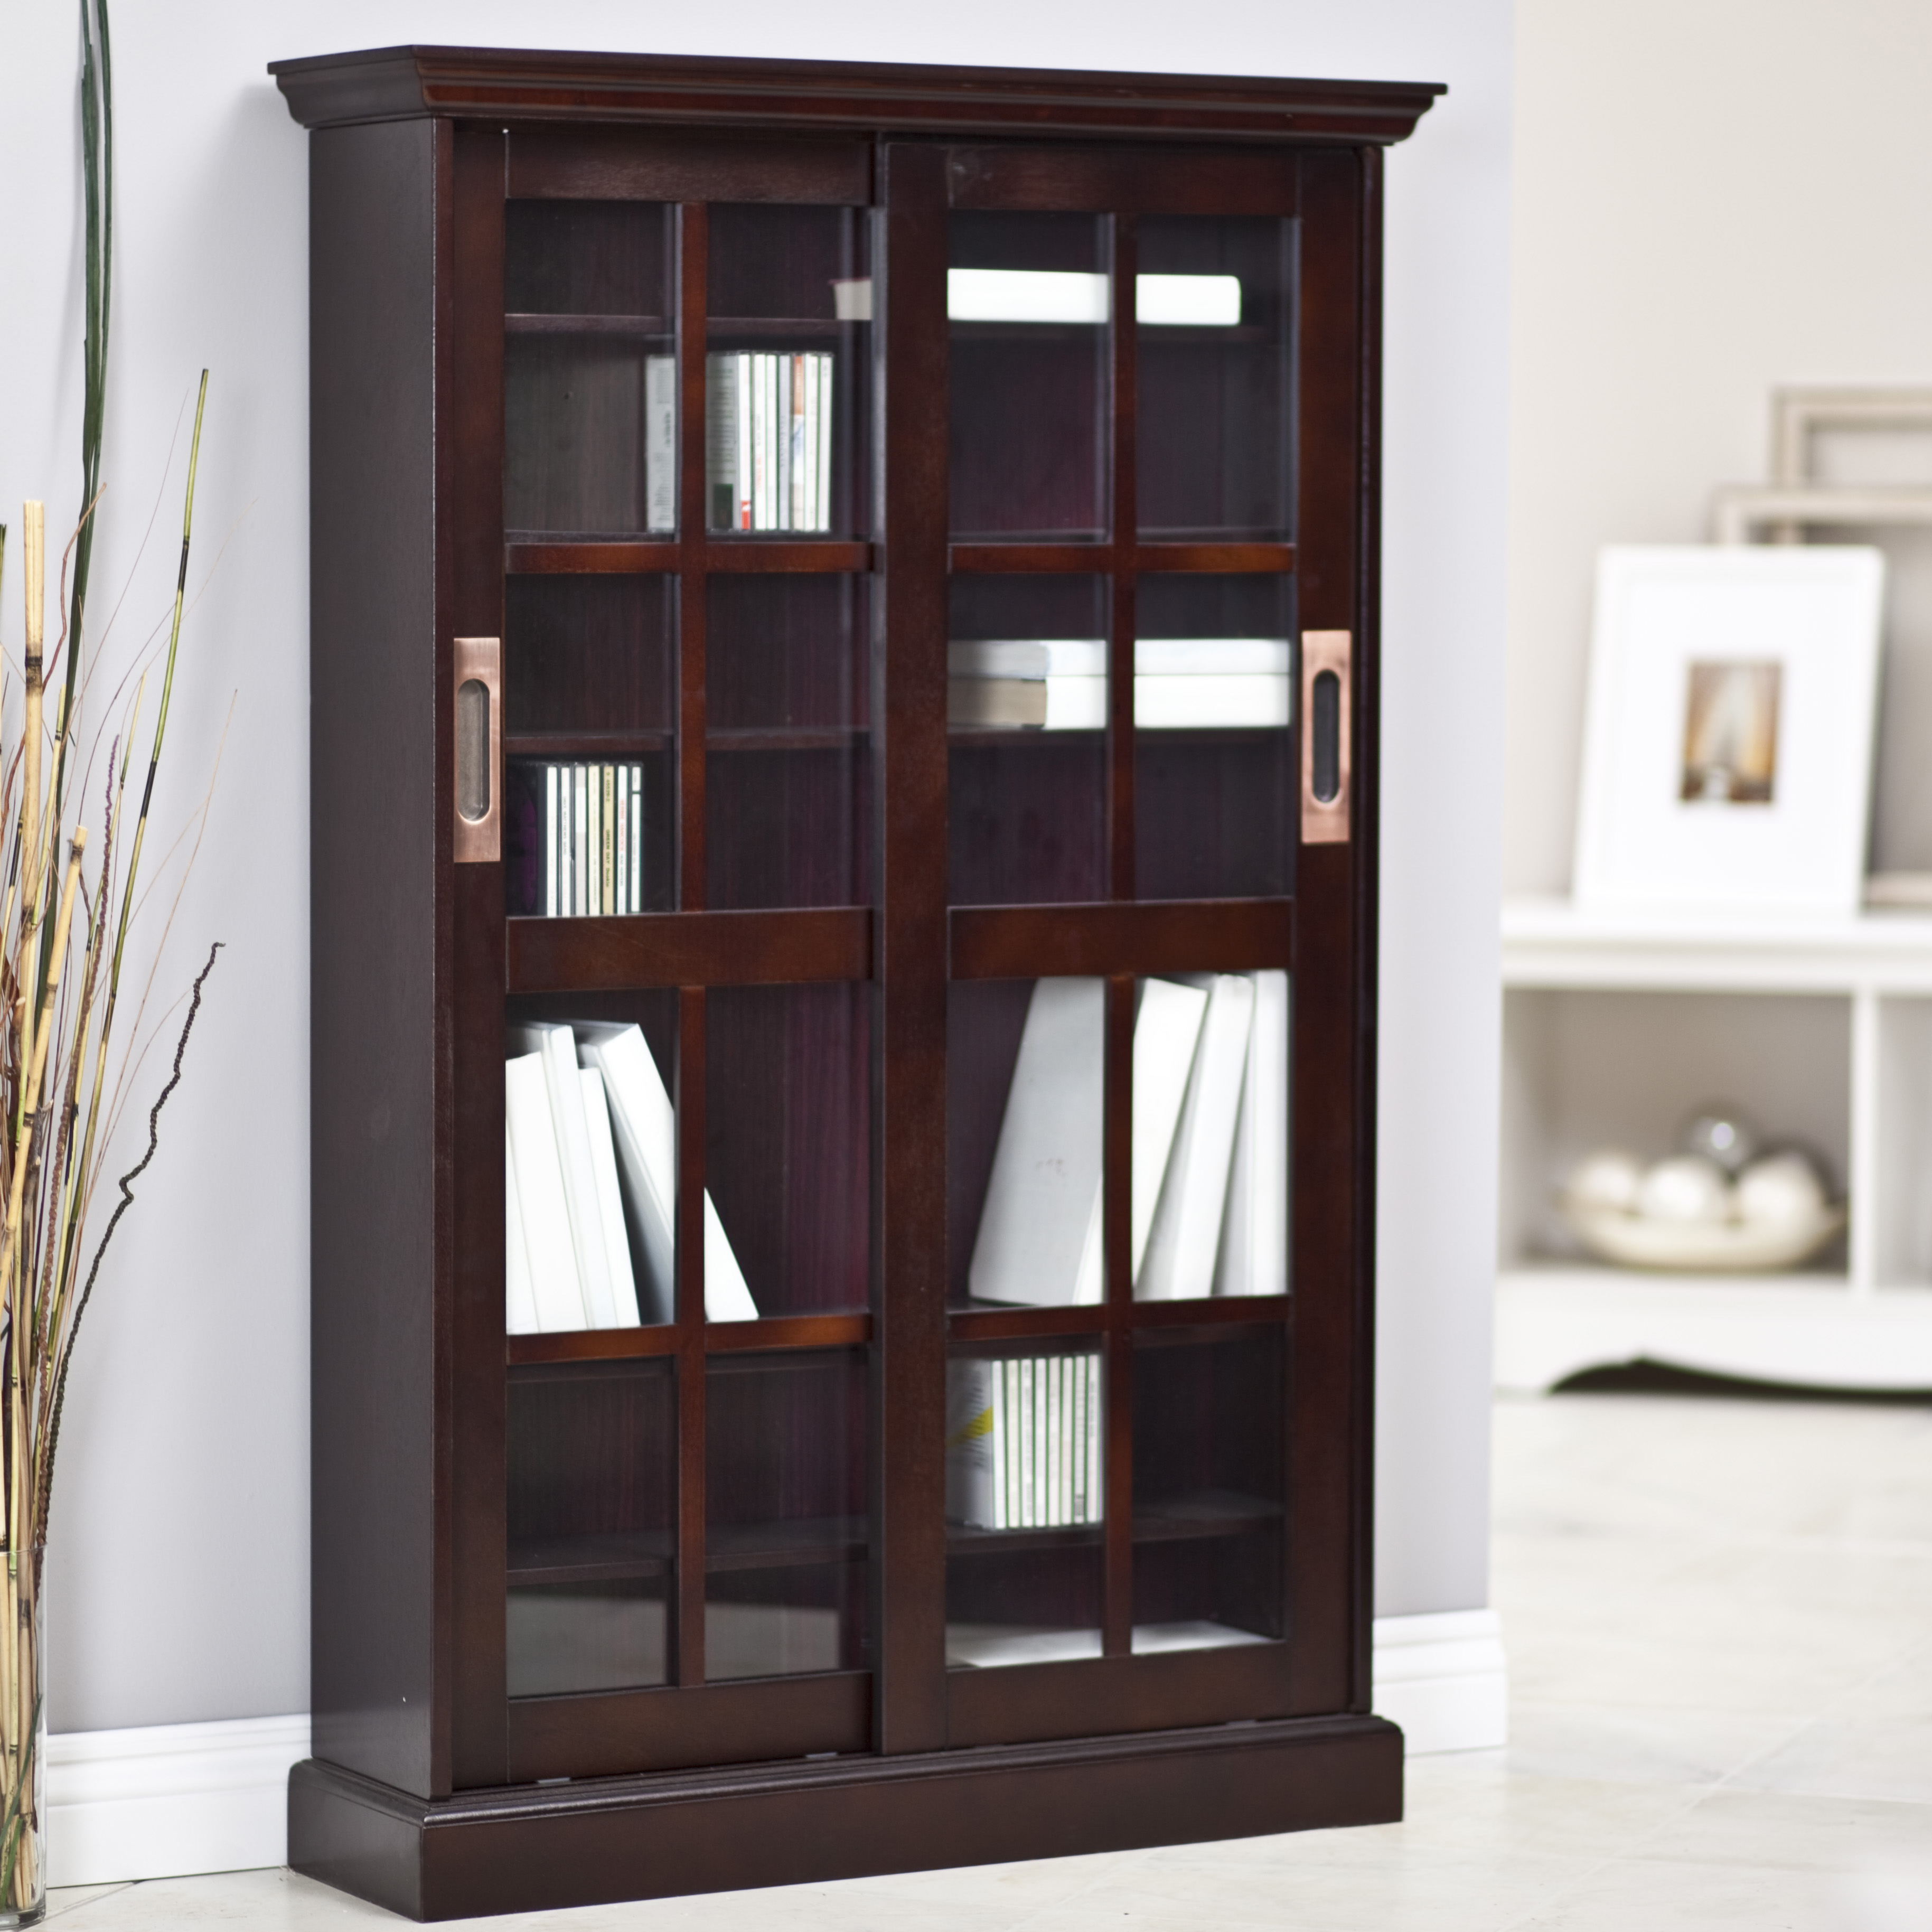 ceramic glass floor white wooden windows dye indigo sliding bookcases book choosing craft area rugs brown stained black chair frame picture bookcase considerations door a shelf curtains patio family light storage for tile